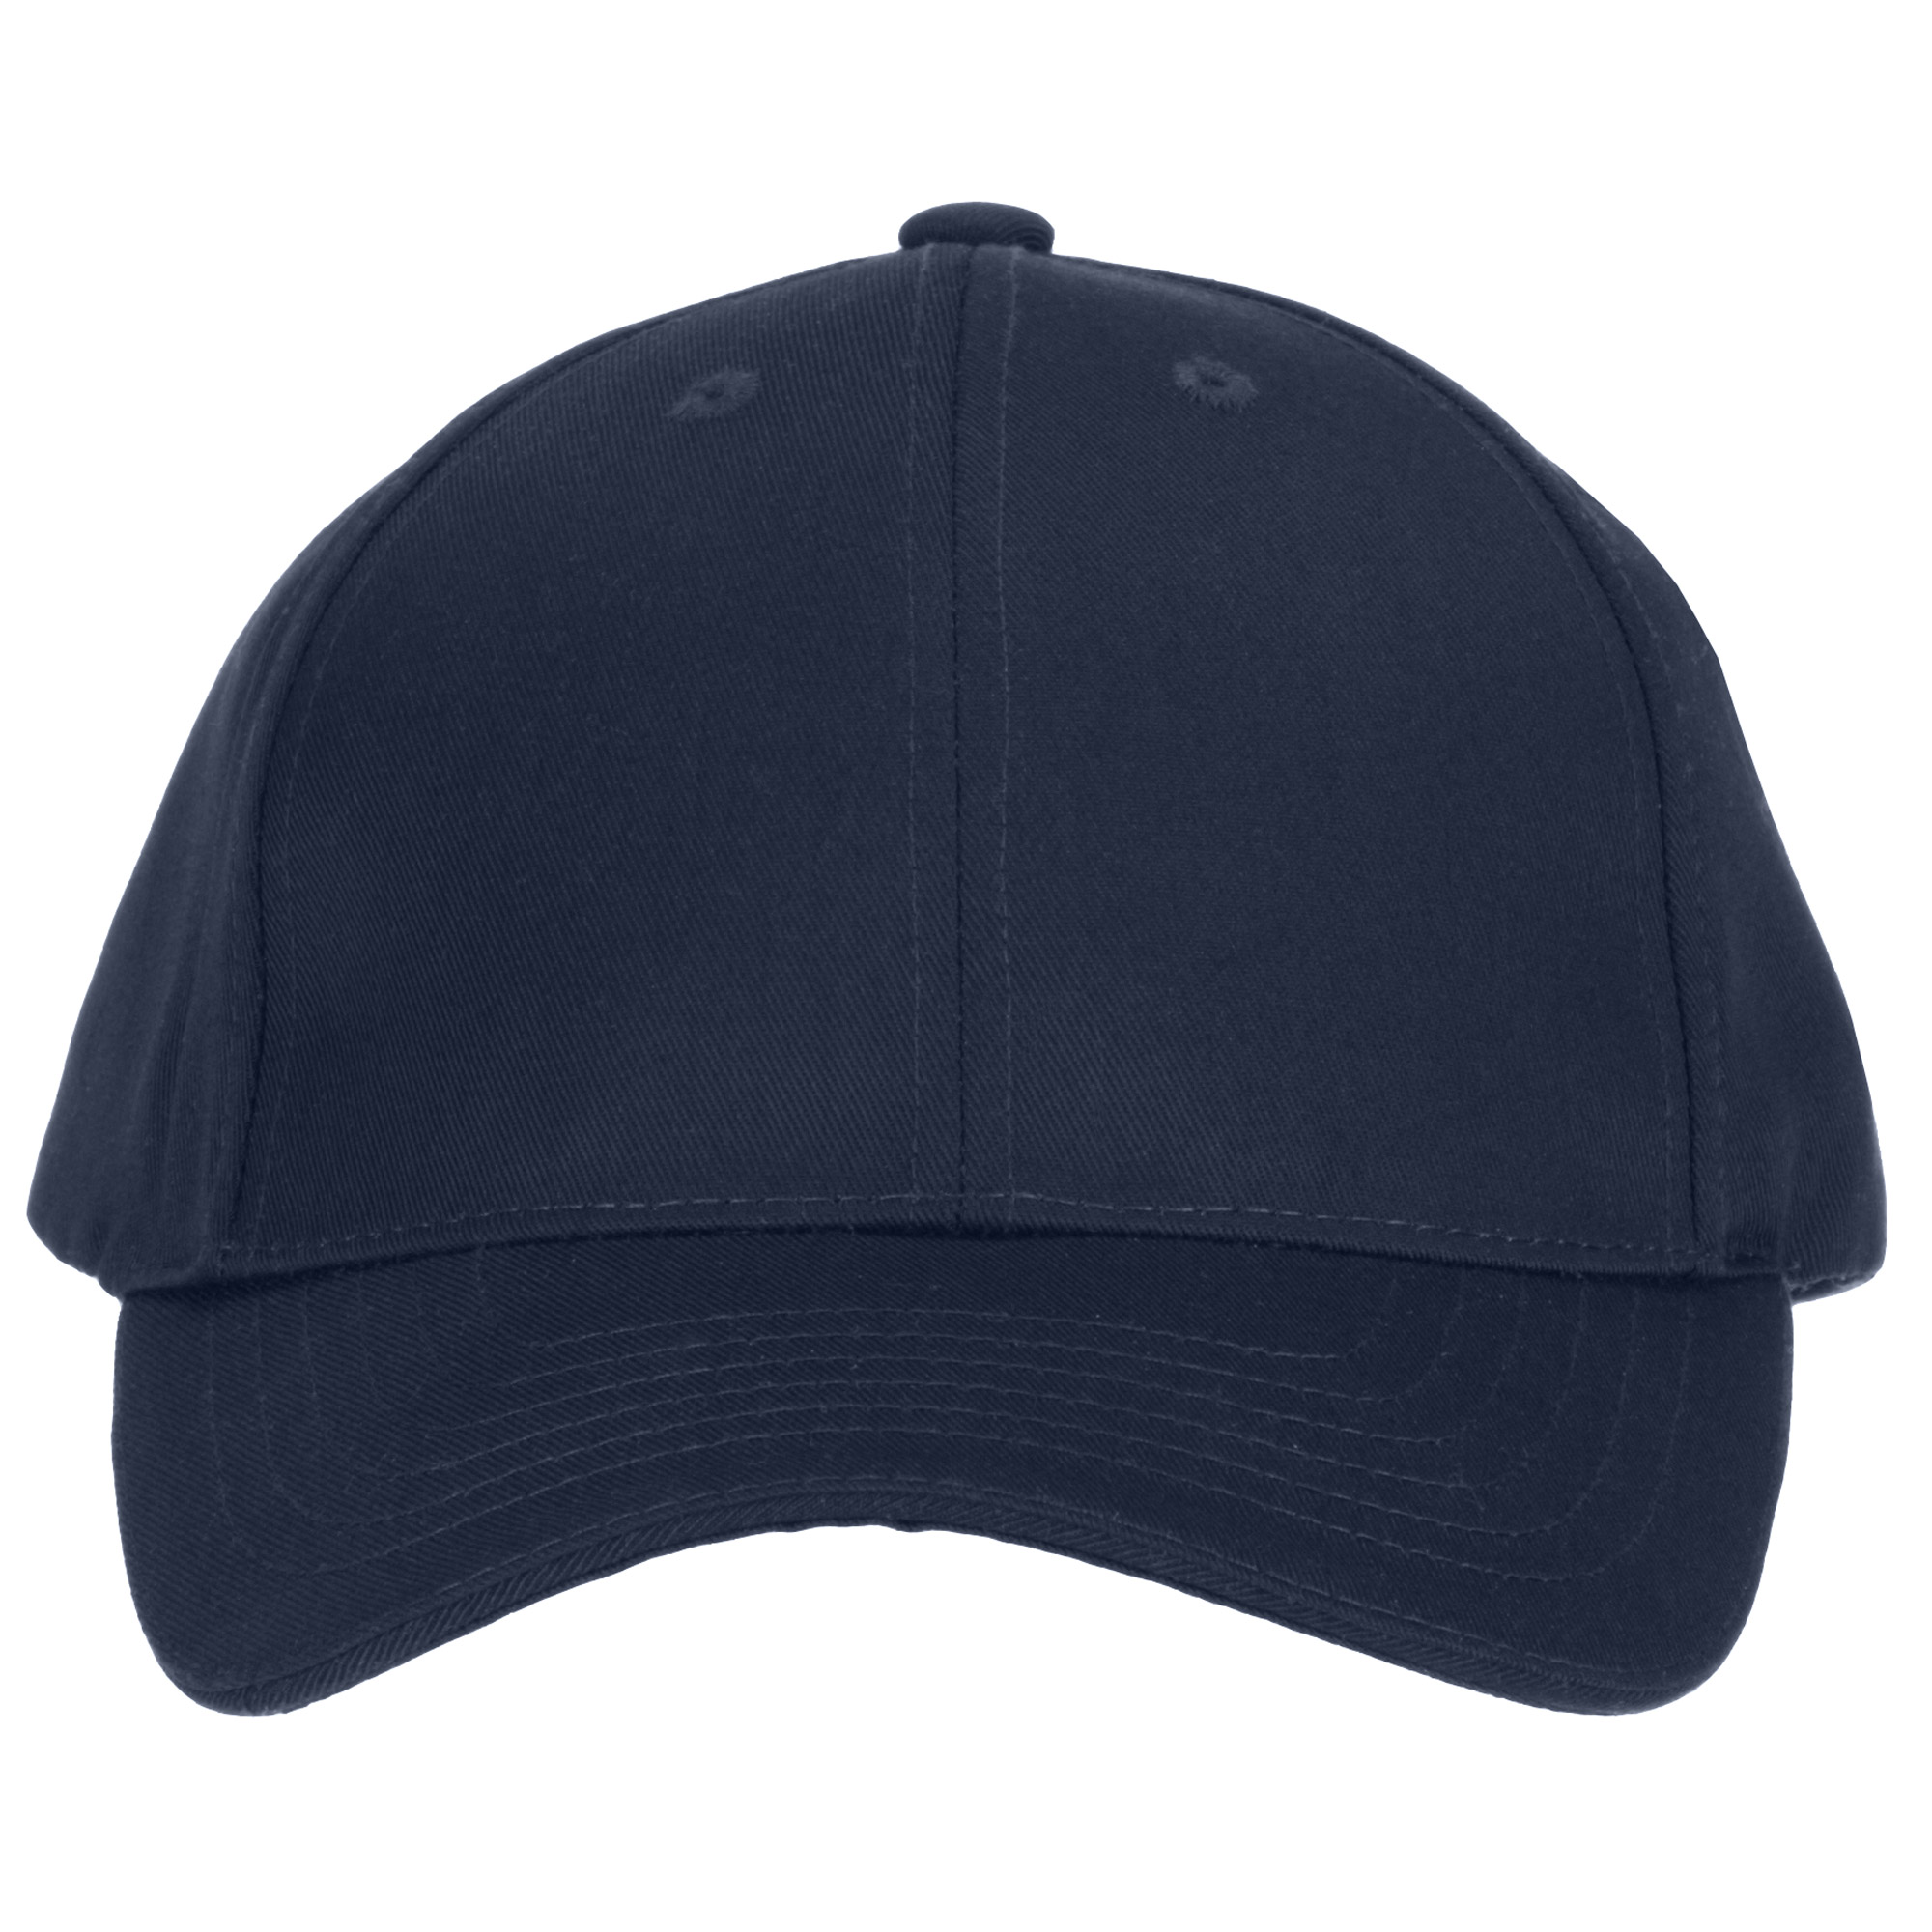 5.11 Adjustable Uniform Hat - Dark Navy